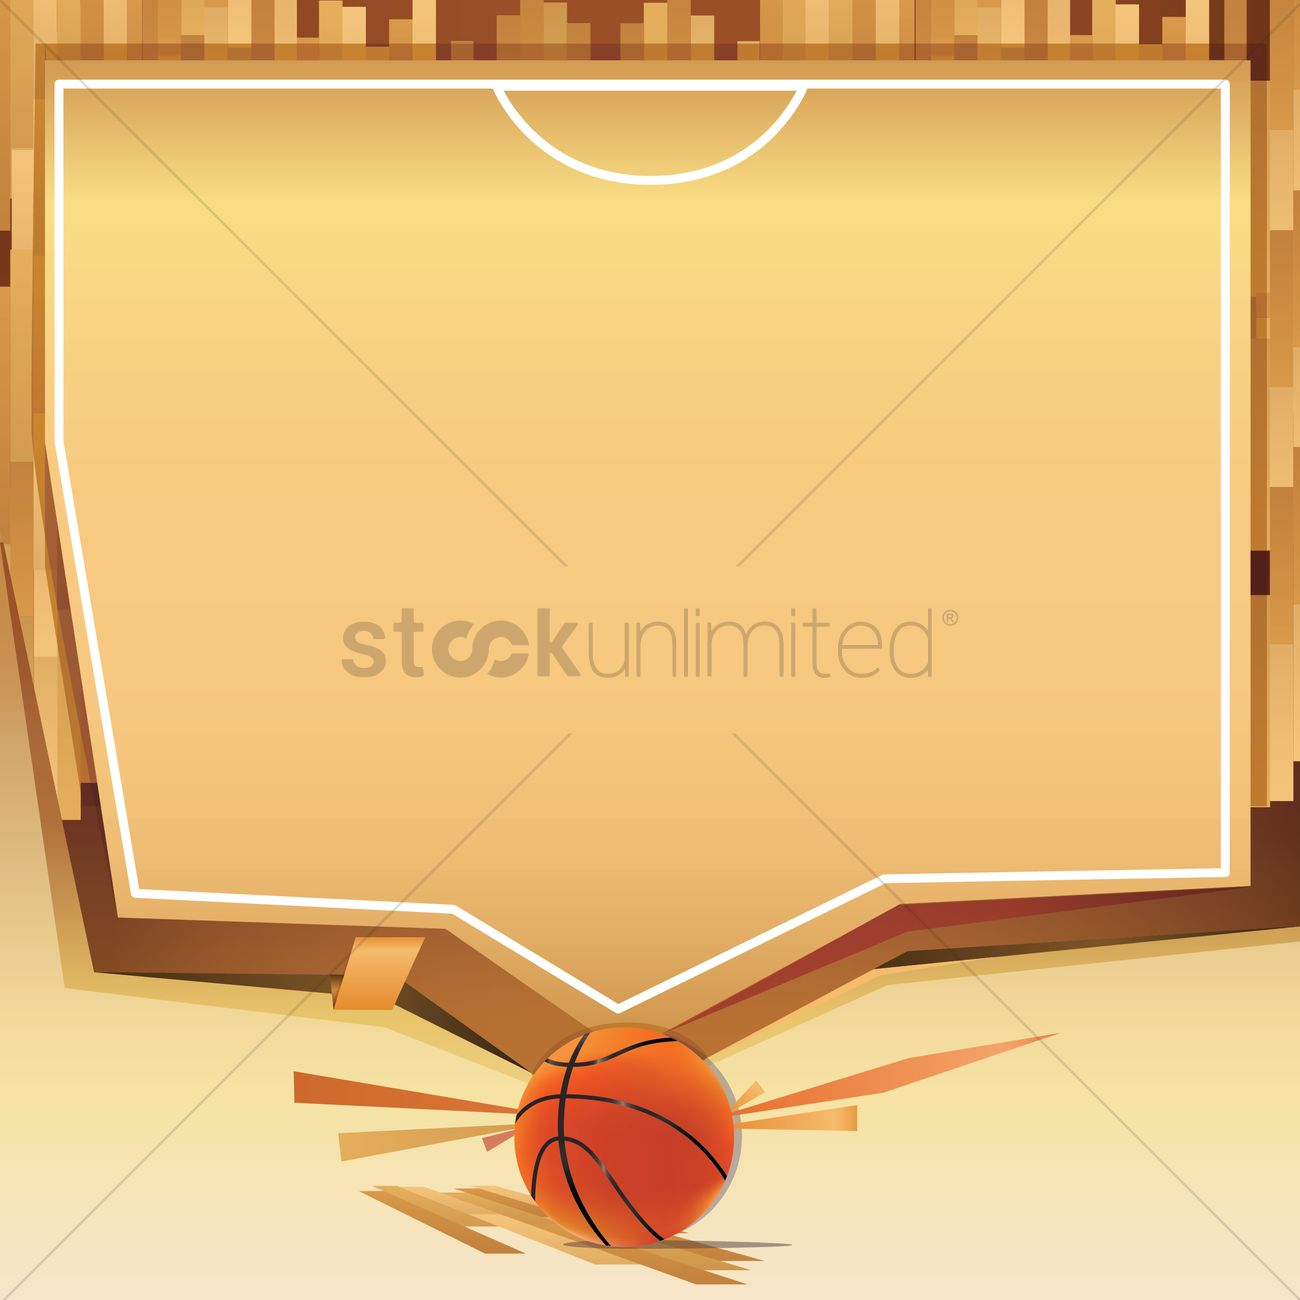 Basketball Court Template Vector Image 1538348 Stockunlimited